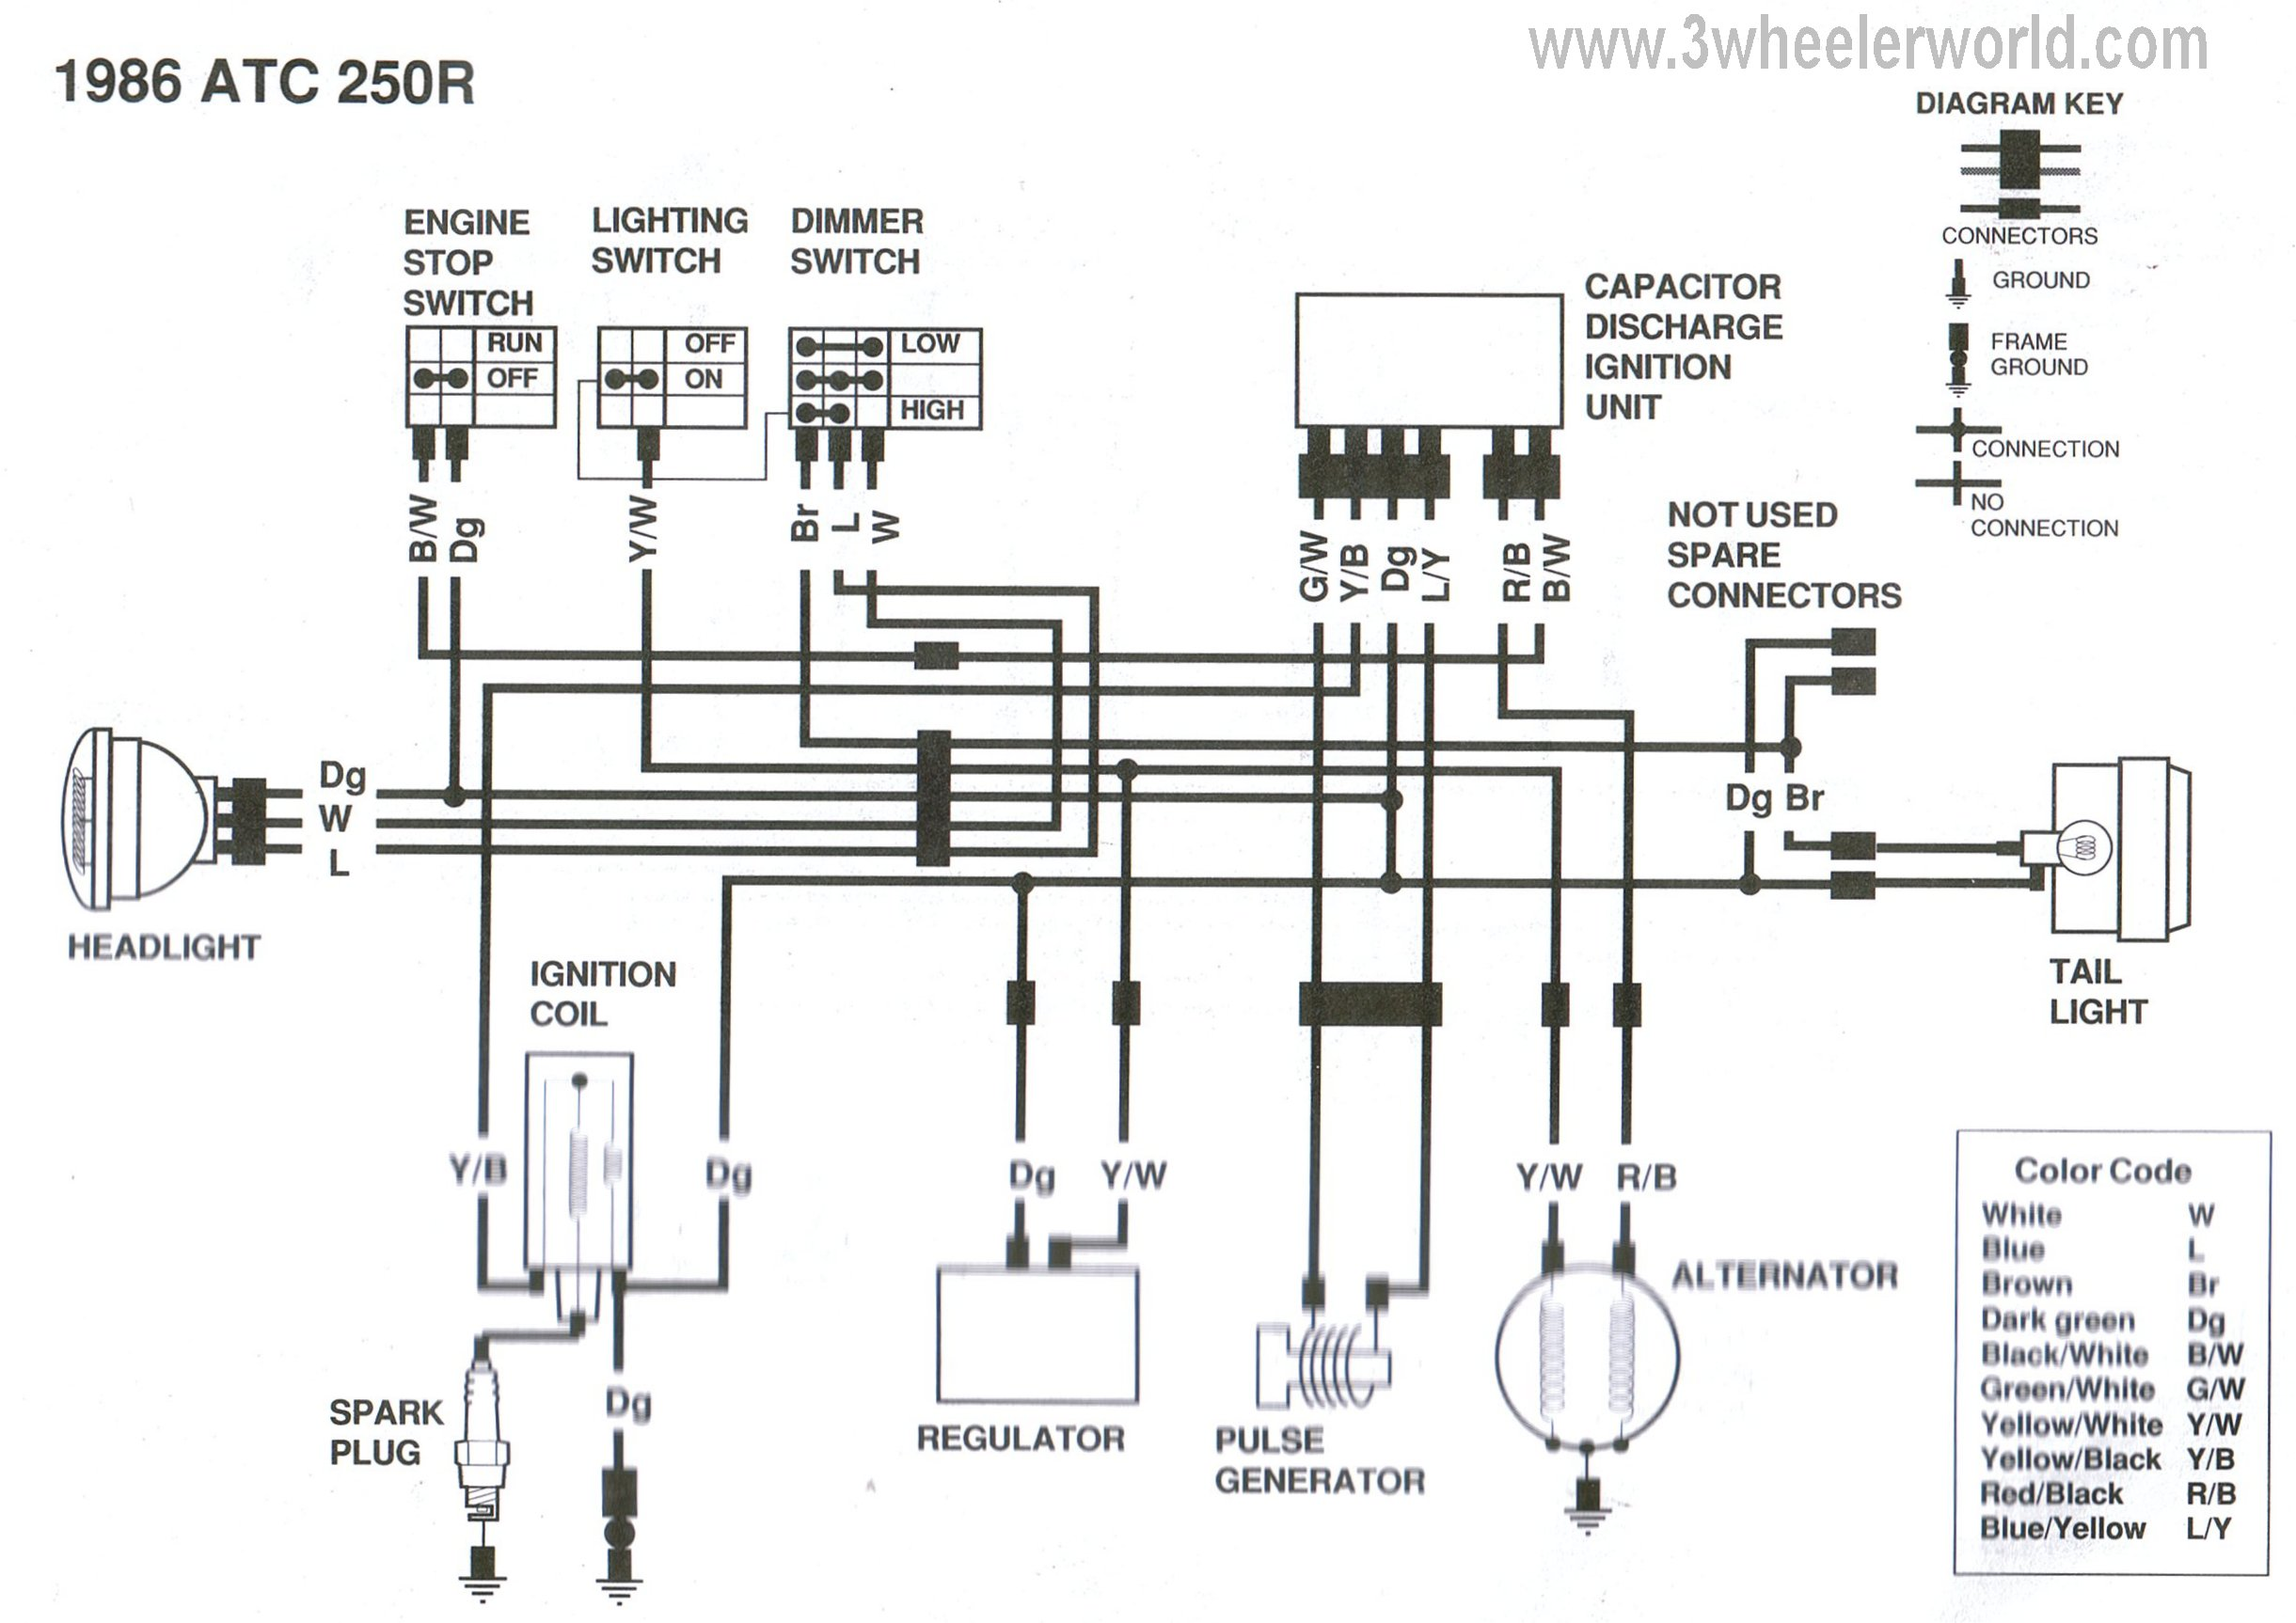 Honda Small Engine Carburetor Diagram Gx390 Parts also Honda Gcv190 Parts Diagram Hrx moreover WiringHonda likewise Honda Gcv 190 Engine Parts also Wiring Diagram For 1983 Nighthawk 650. on honda gx630 wiring diagram